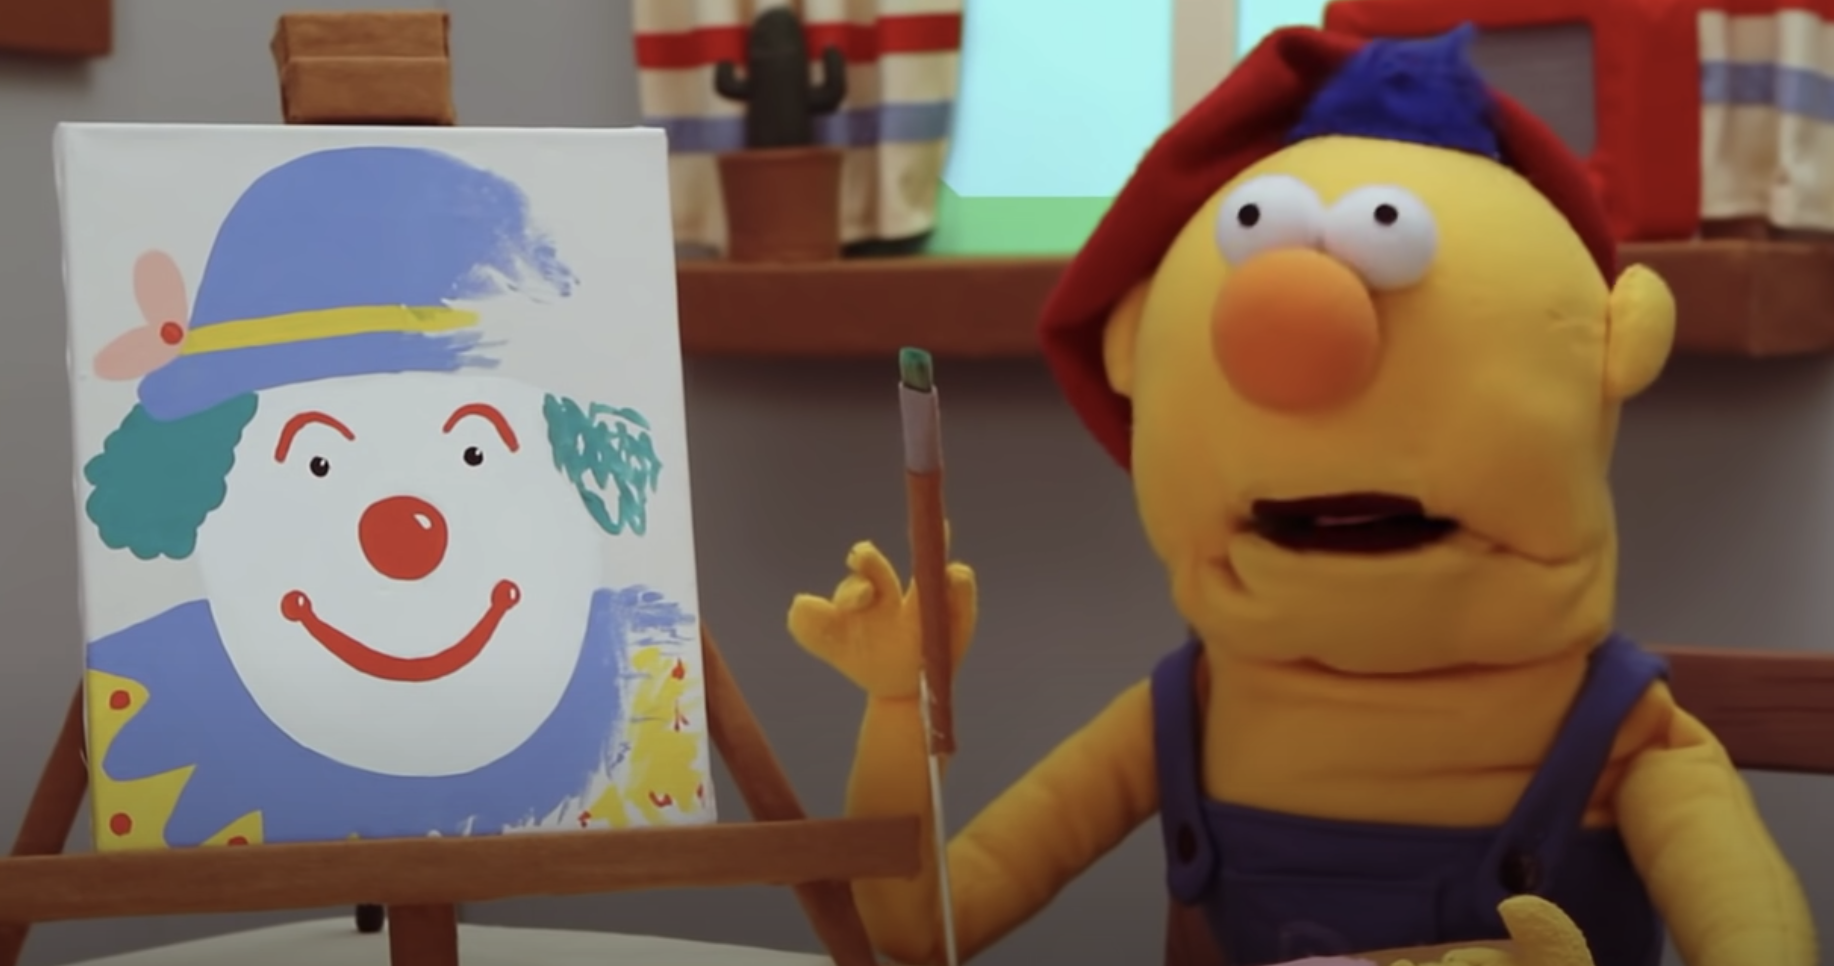 the yellow puppet from the short